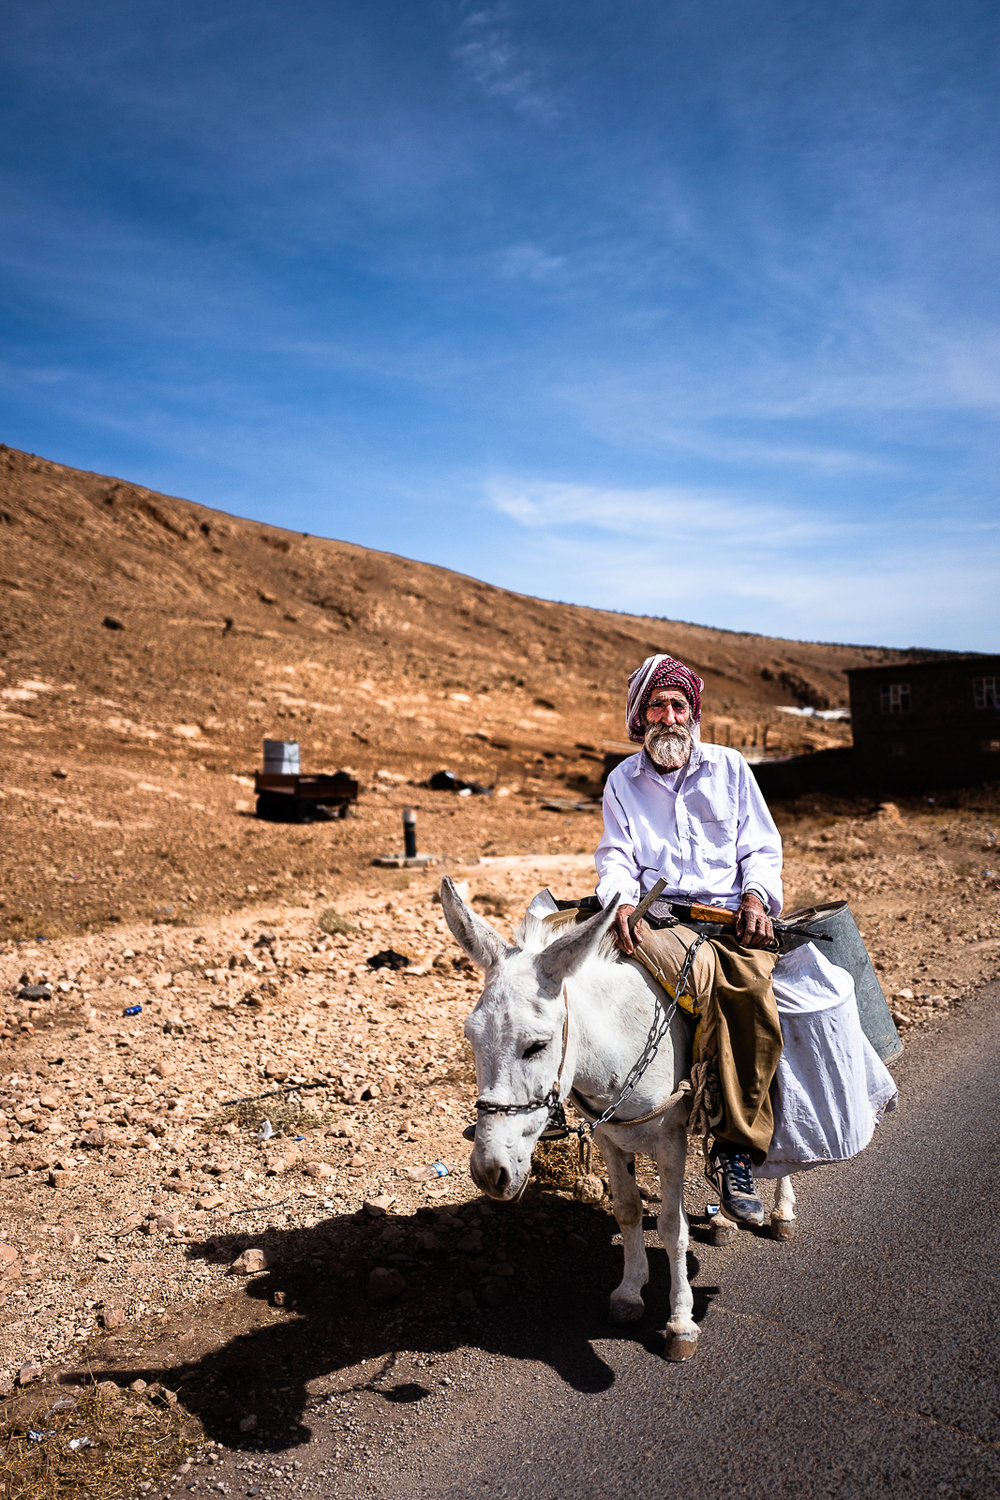 An old man with a Kalashnikov on his donkey. Sinjar mount